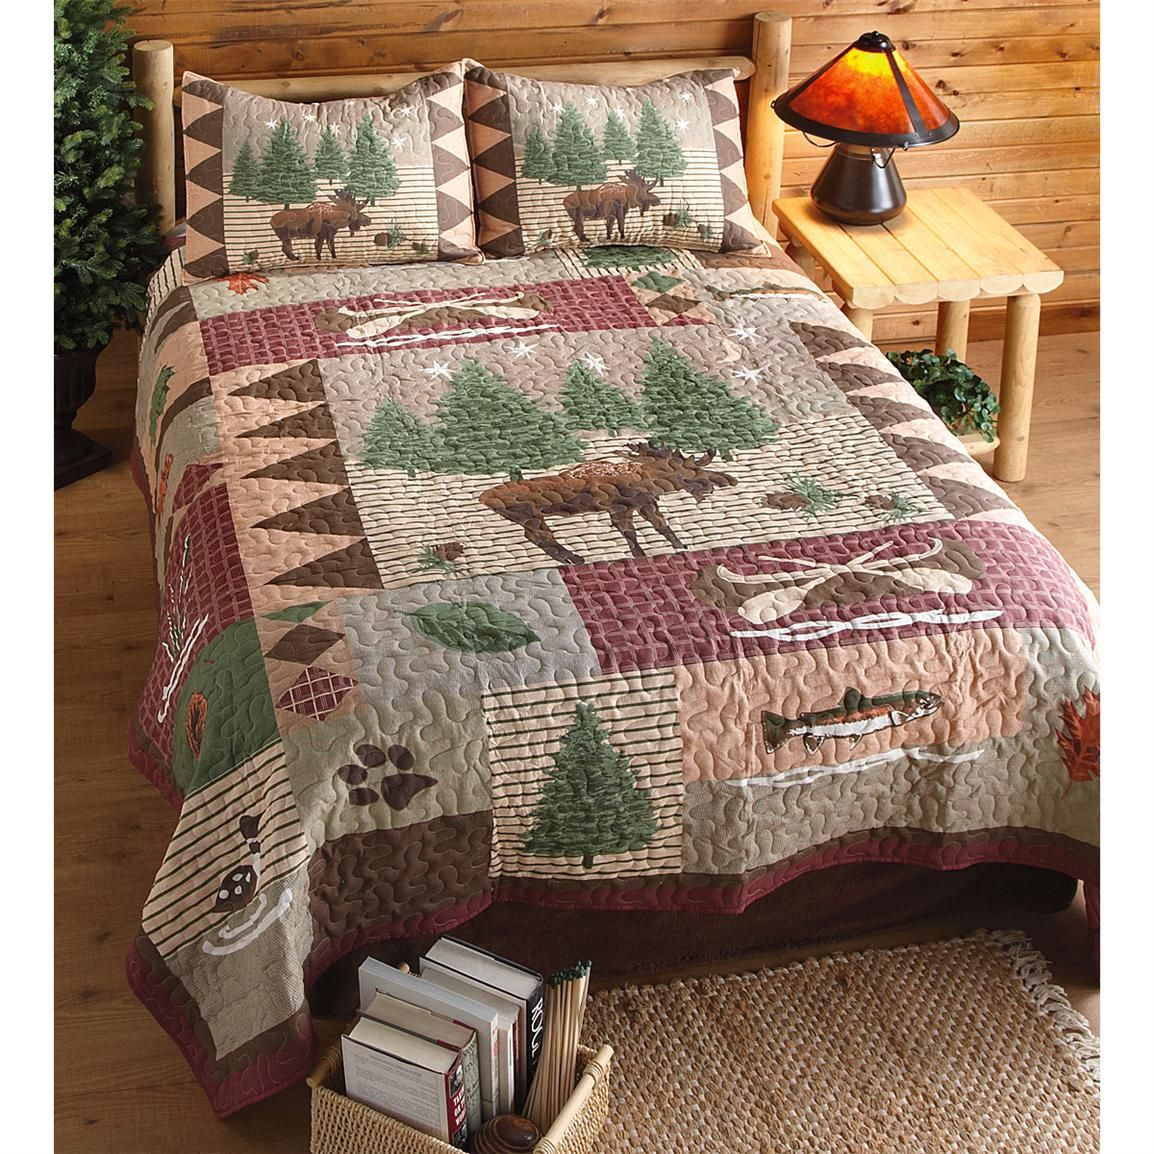 Moose Lodge Quilt Set great look for your lodge, cabin